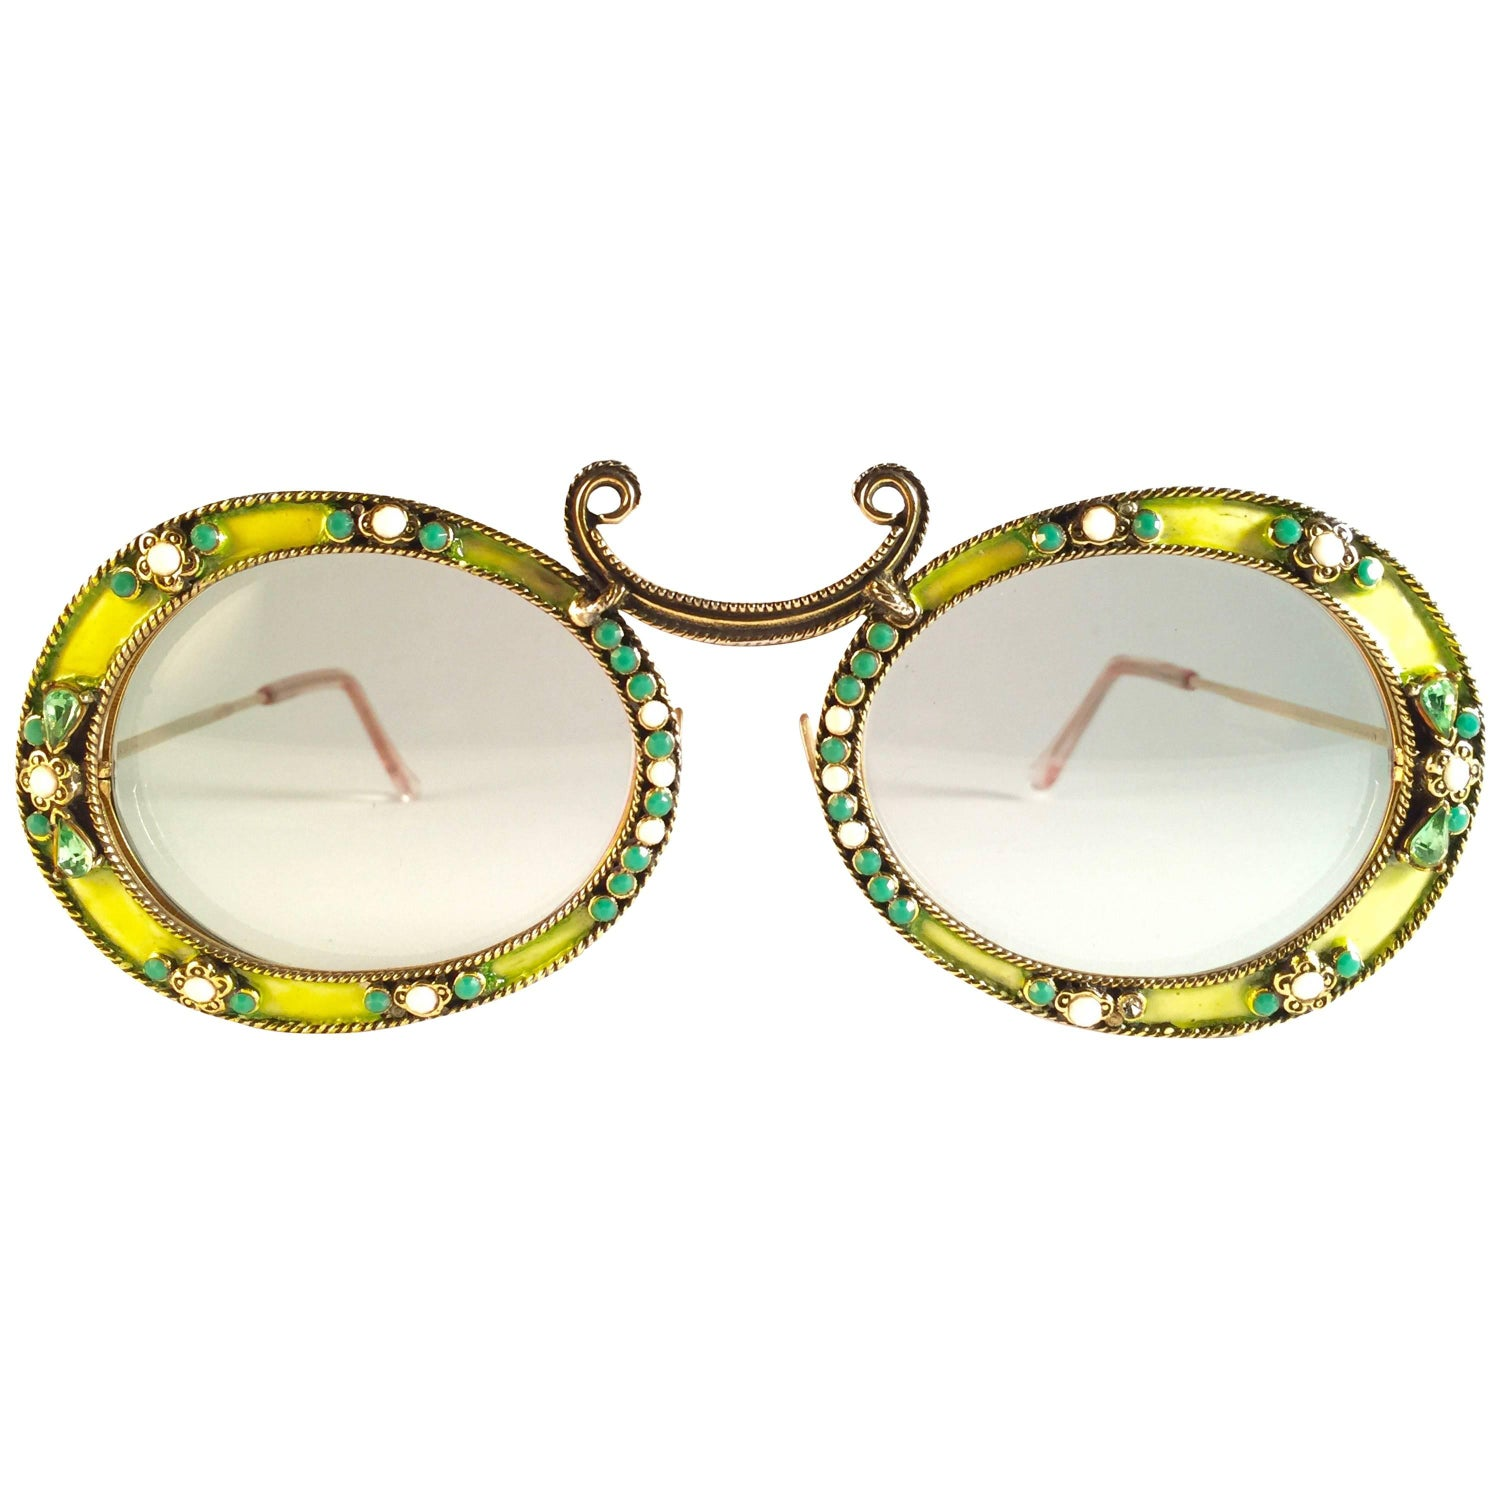 ee7cf5bde87 Ultra Rare 1960 Christian Dior Enamel Jewelled by Tura Collector Item  Sunglasses